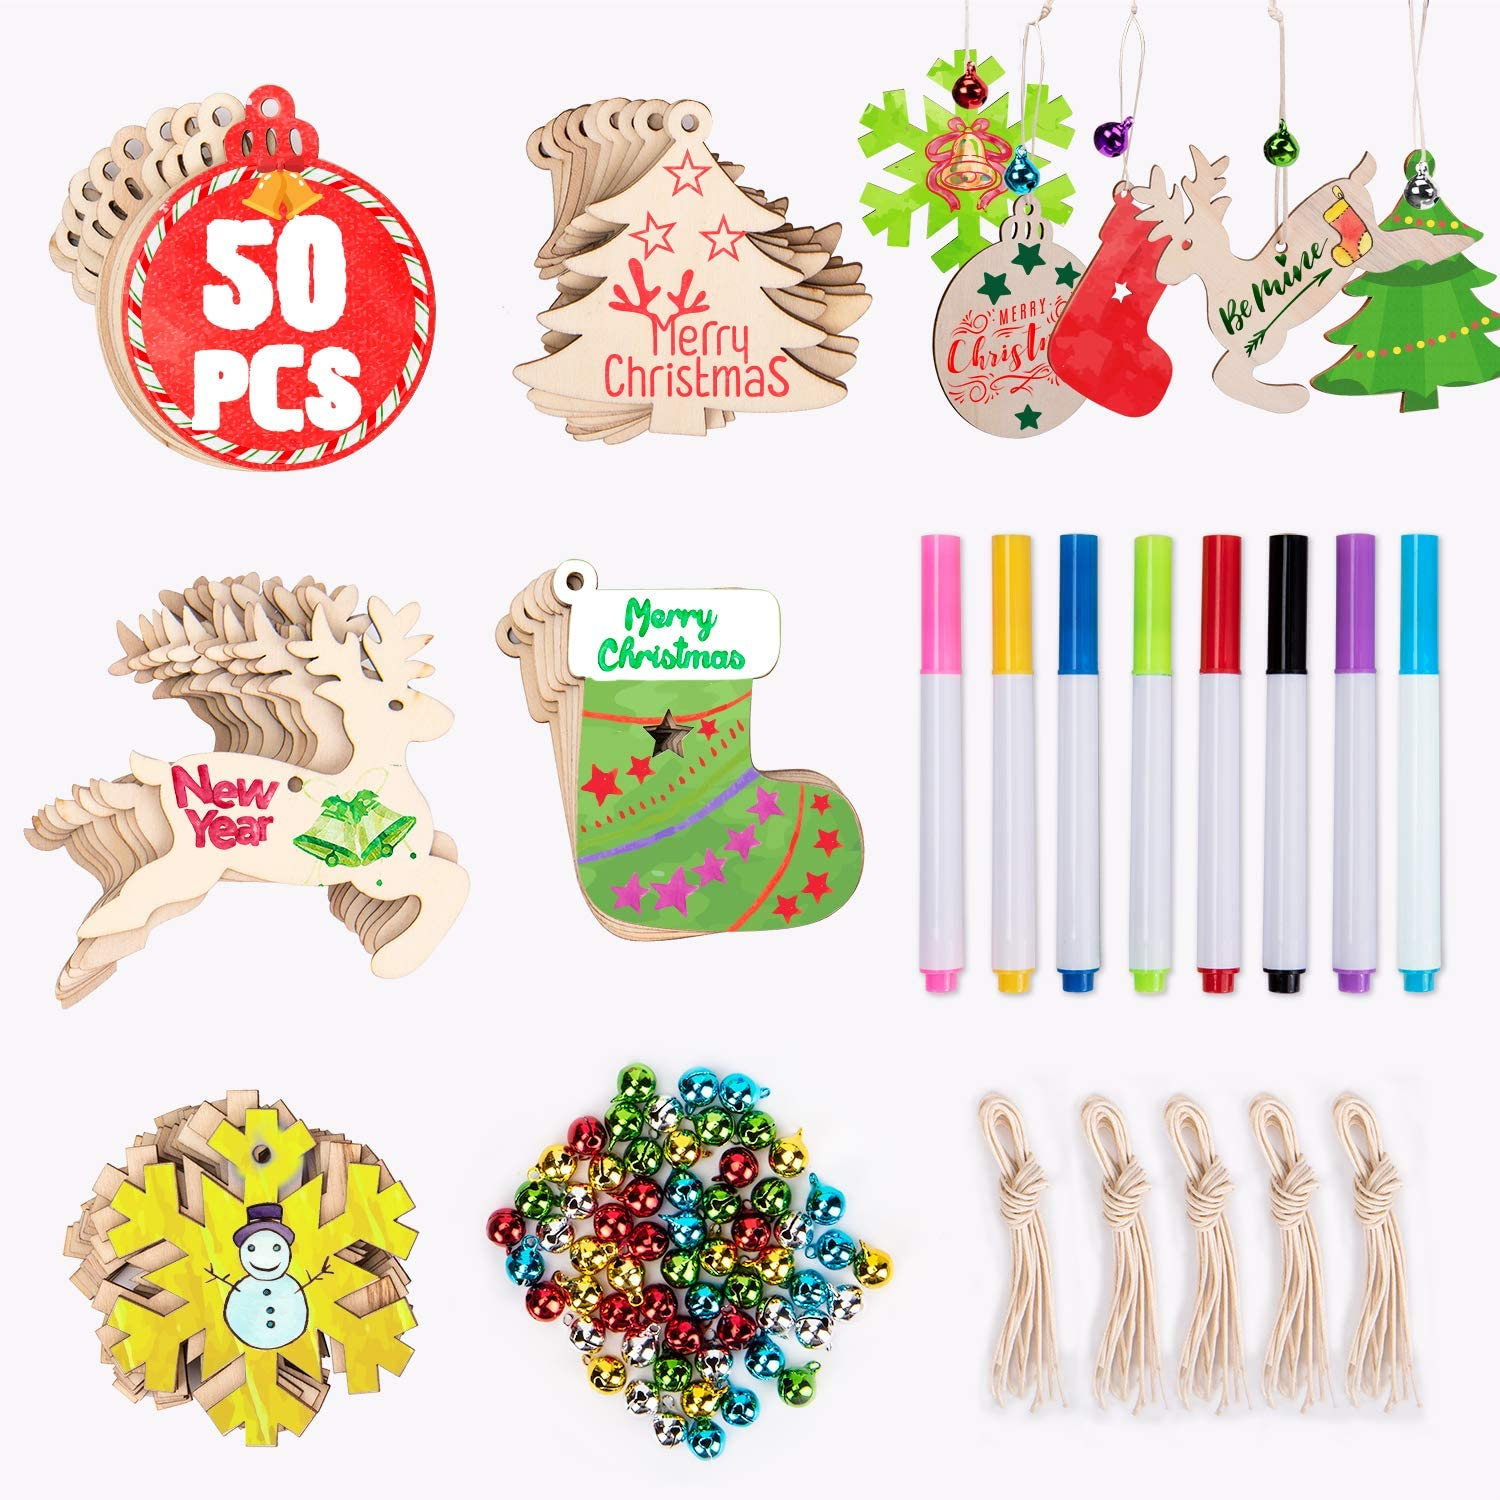 Joyjoz 50Pcs Christmas Wooden Ornaments Unfinished, 5 Styles Craft Wood Kit for Crafts Christmas Ornaments DIY Crafts with 8 Markers and 60 Jingle Bells